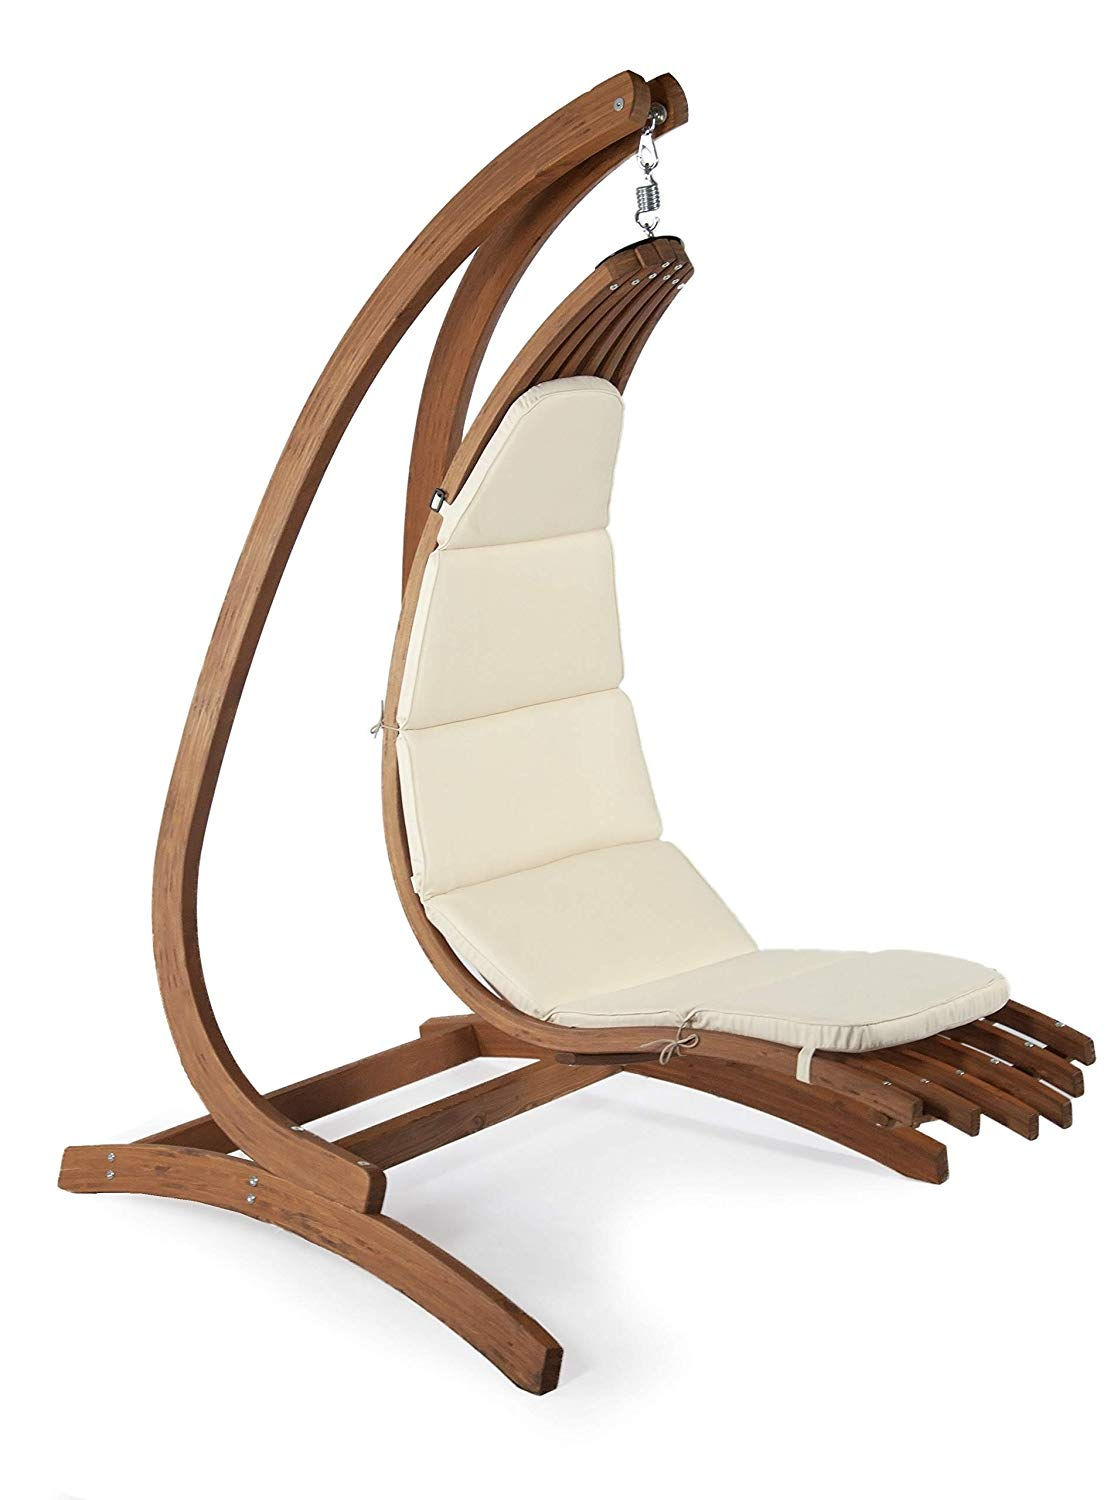 wooden-hanging-chair-lounge-beutiful-curved-outdoor-indoor